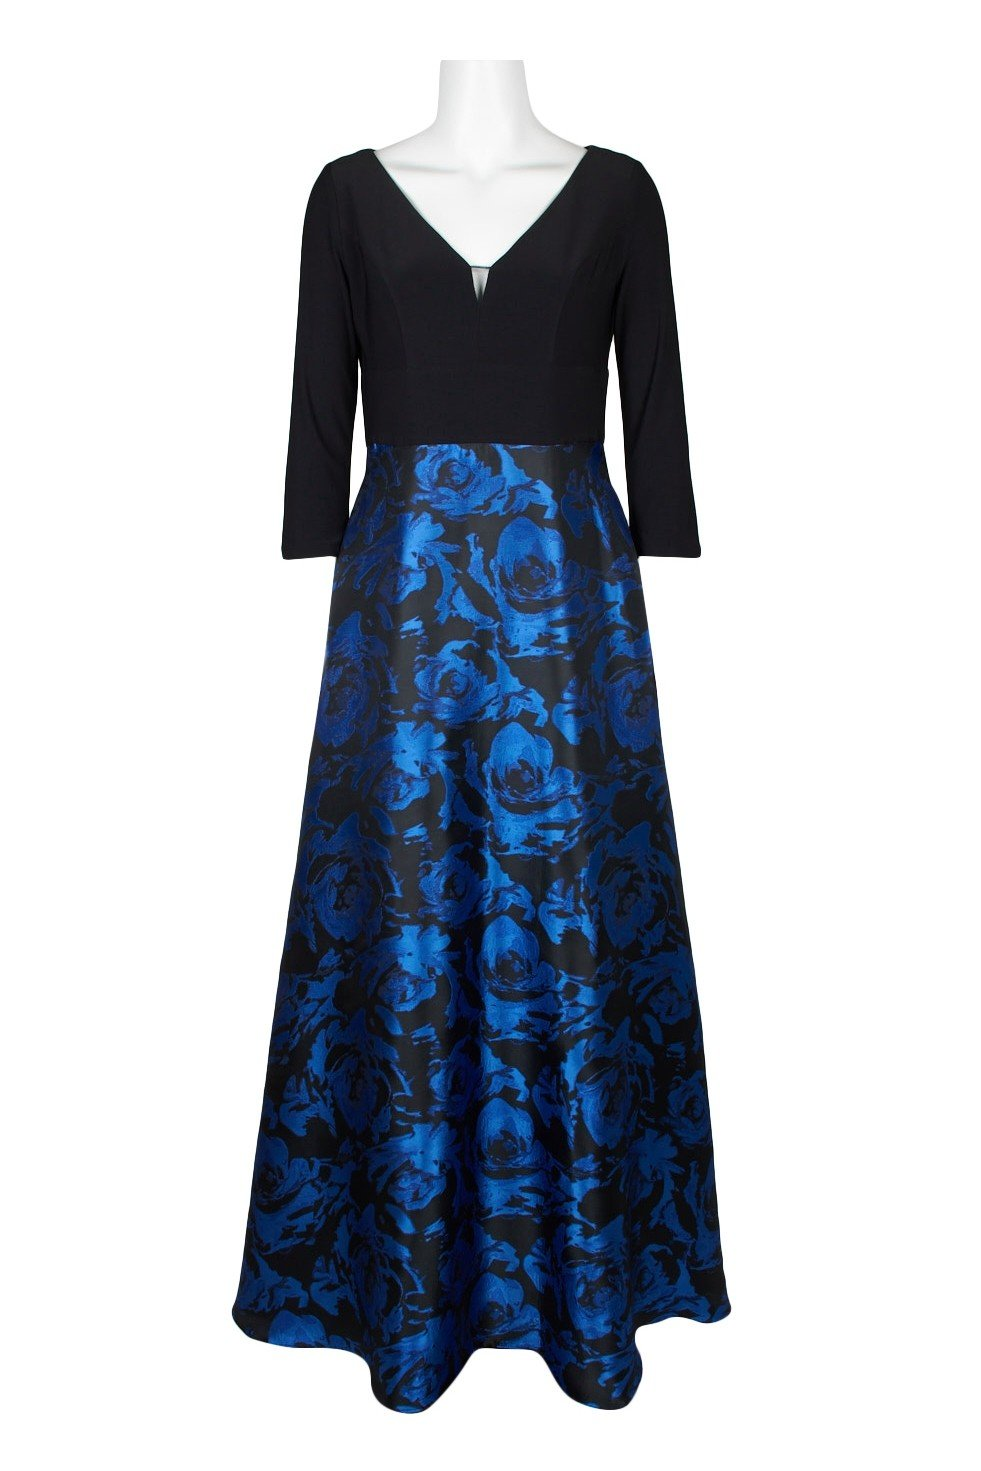 Adrianna Papell - AP1E206803 Floral Print Jacquard A-line Dress In Black and Blue